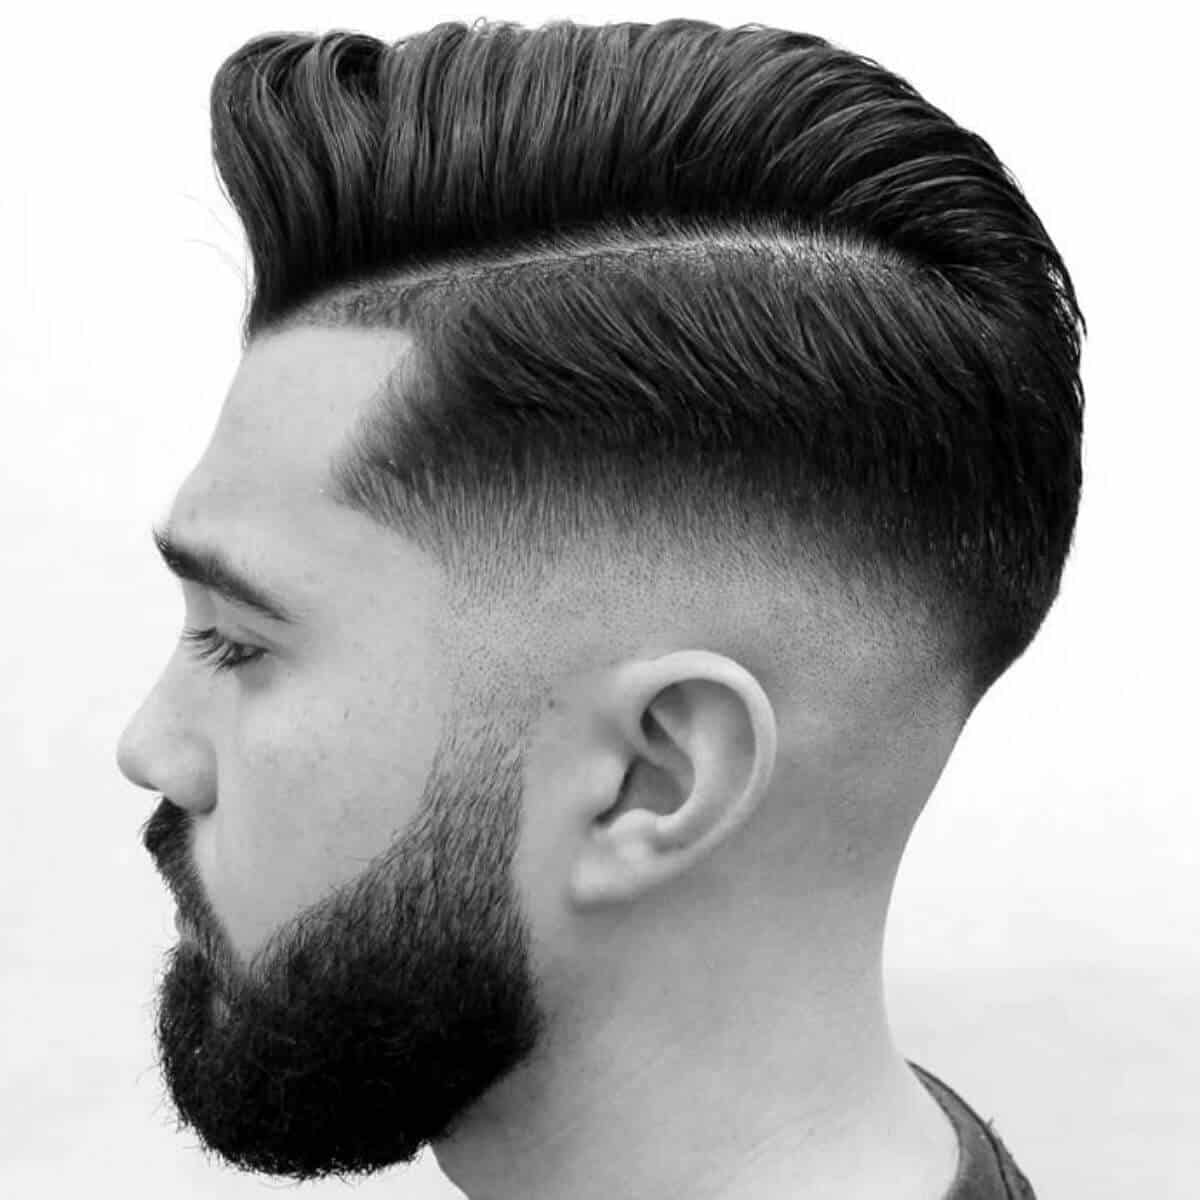 Side profile showing a comb over haircut.